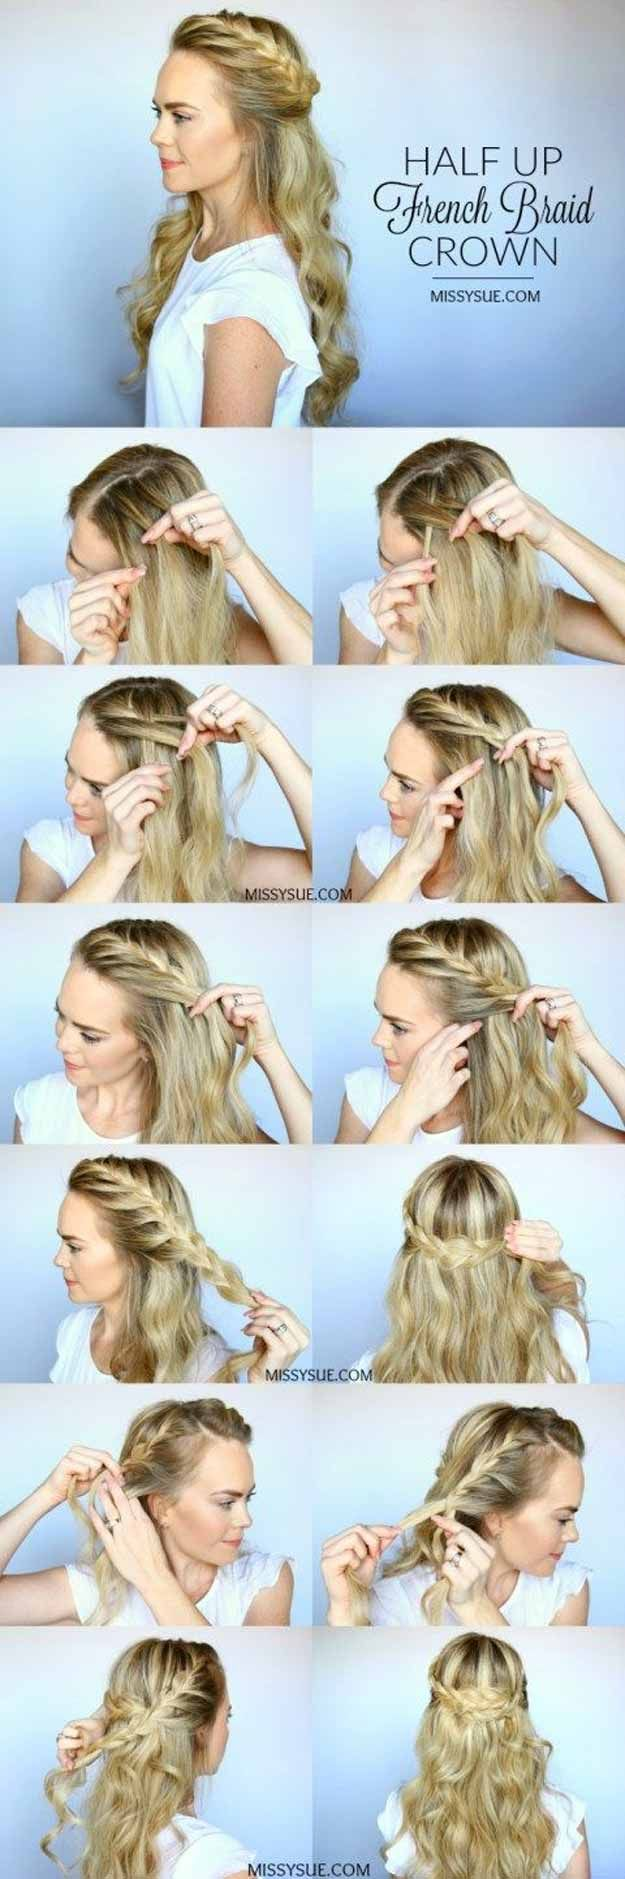 Best Pinterest Hair Tutorials - Half-Up French Braid Crown - Check Out These Super Cute And Super Simple Hairstyles From The Best Pinterest Hair Tutorials Including Styles Like Messy Buns And Half Up Half Down Hairdos. Dutch Braids Are Super Hot Right Now Too. These Are The Best Hairstyle Tutorials Ideas On Pinterest Right Now. Easy Hair Up And Hair Down Ideas For Short Hair, Long Hair, and Medium Length Hair. Hair Tutorials For Braids, For Curls, And Step By Step Tutorials For Prom, A…